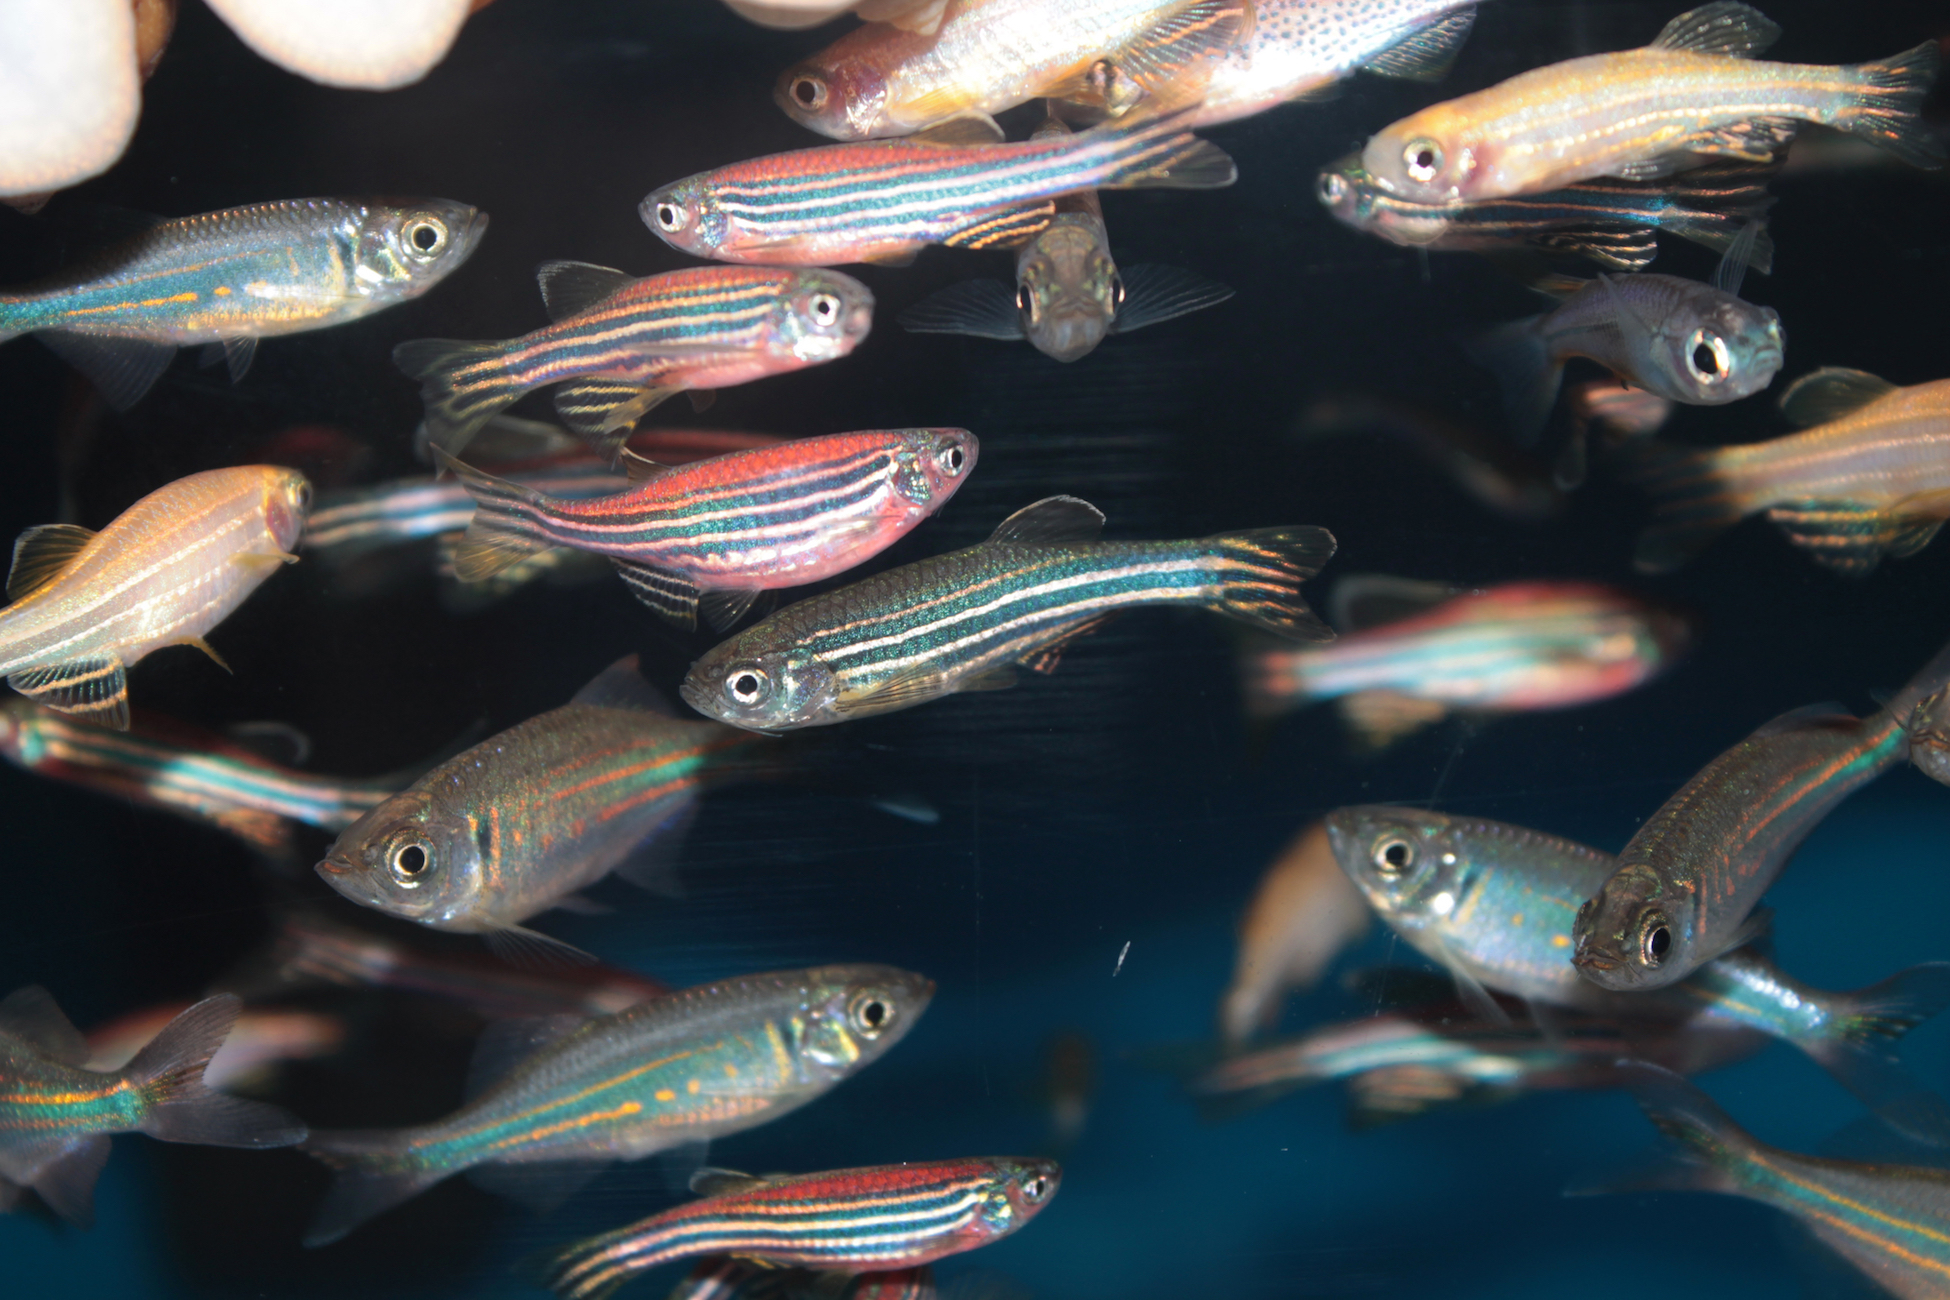 Fish need friends too! Or it's at least true that zebrafish seek the support of their shoal – or community of zebrafish – in times of stress.